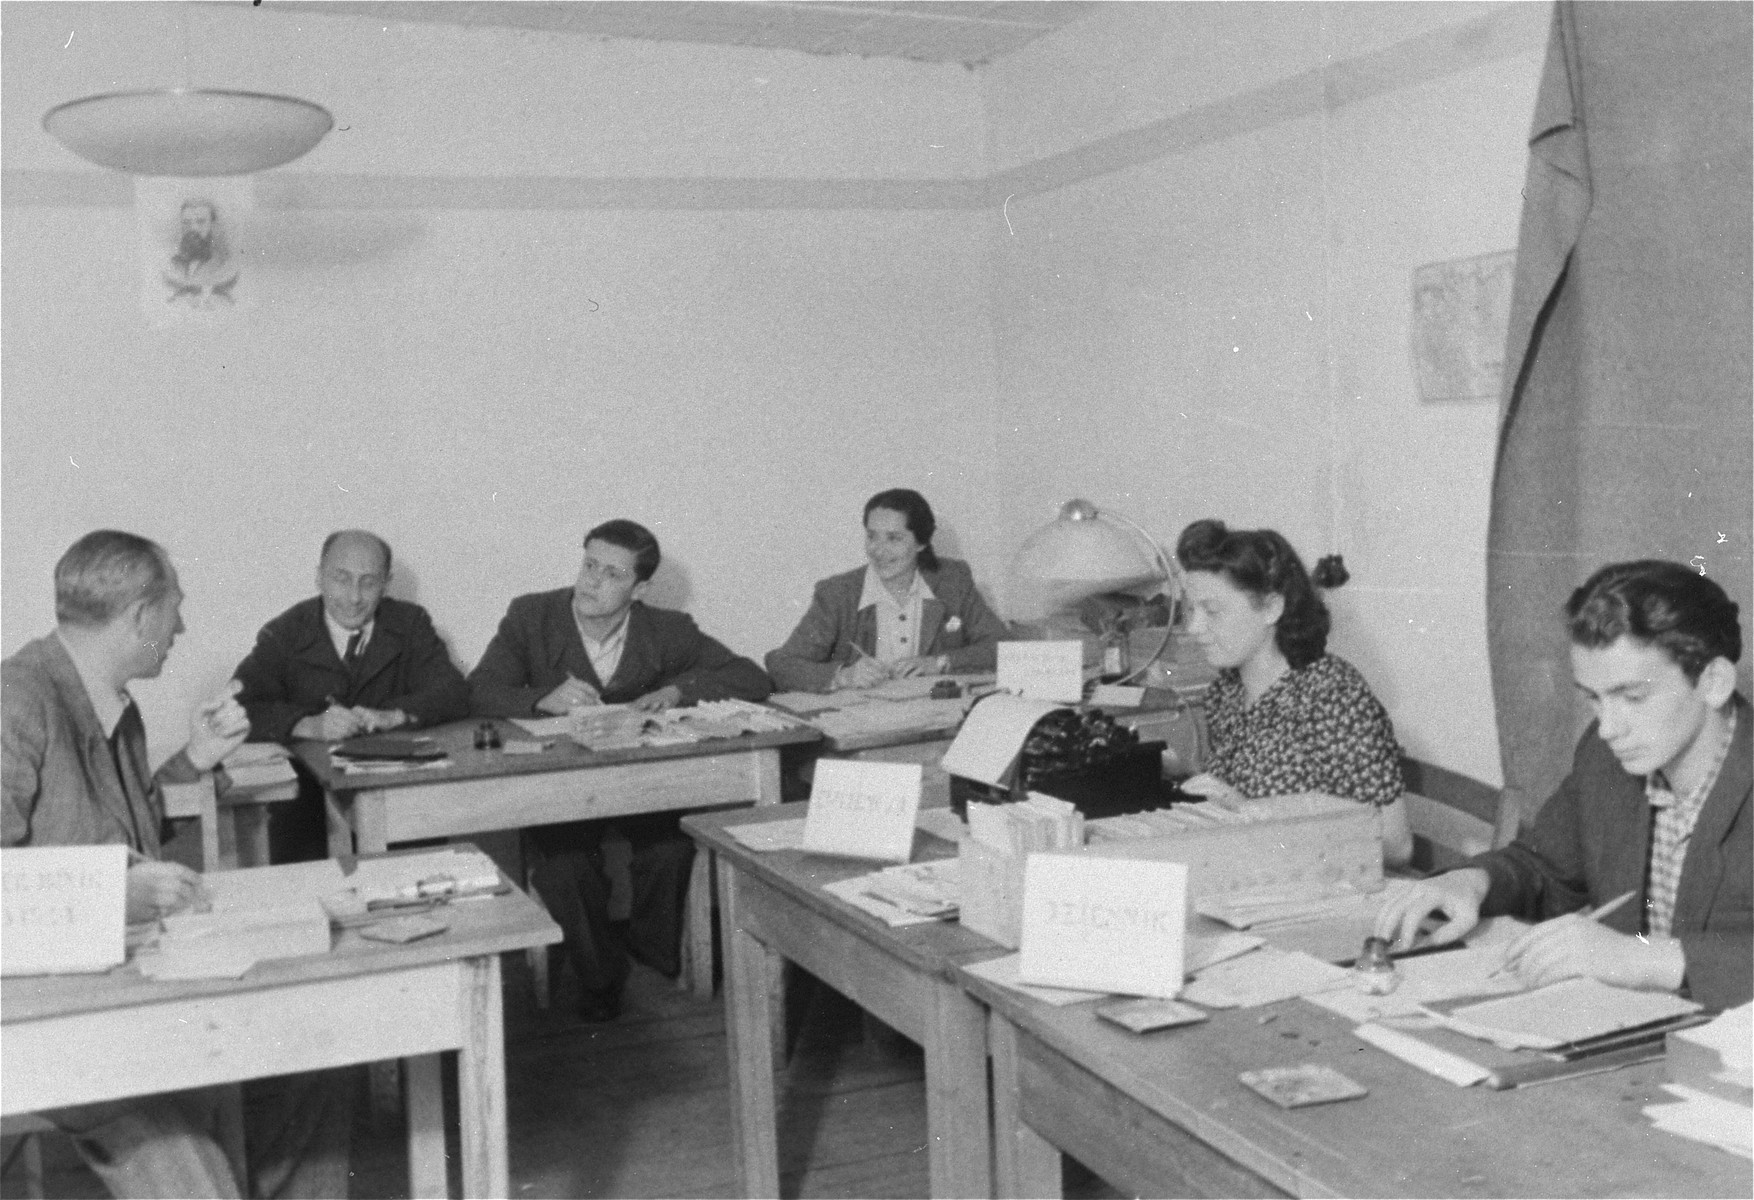 Jewish displaced persons work in the Zeilsheim camp offices.